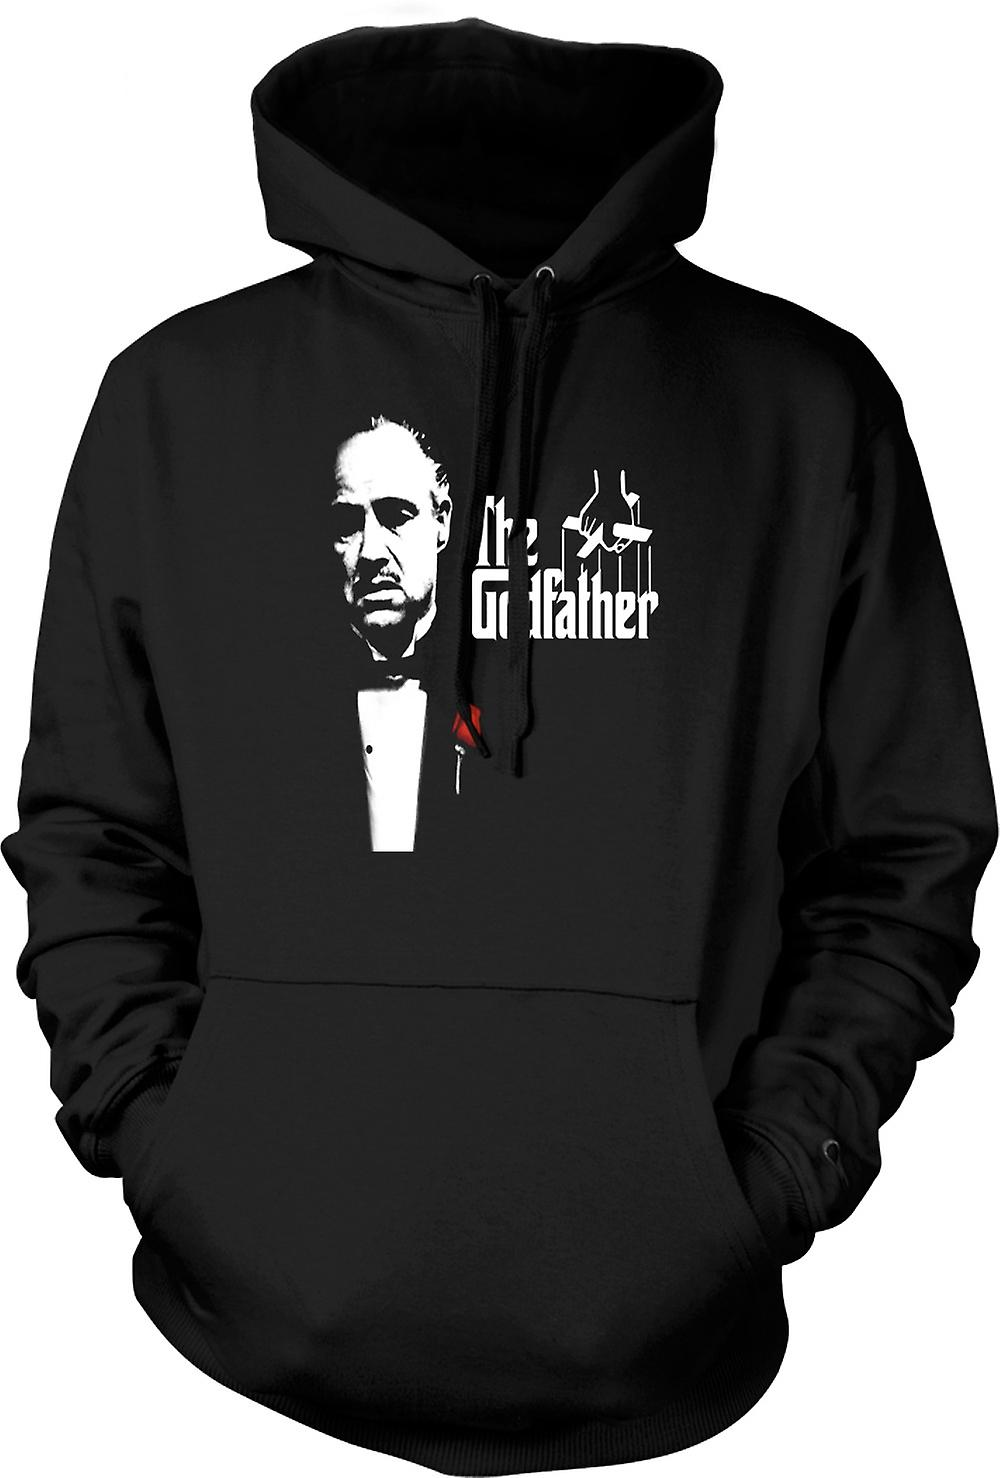 Kids Hoodie - The Godfather - Brando - Mafia